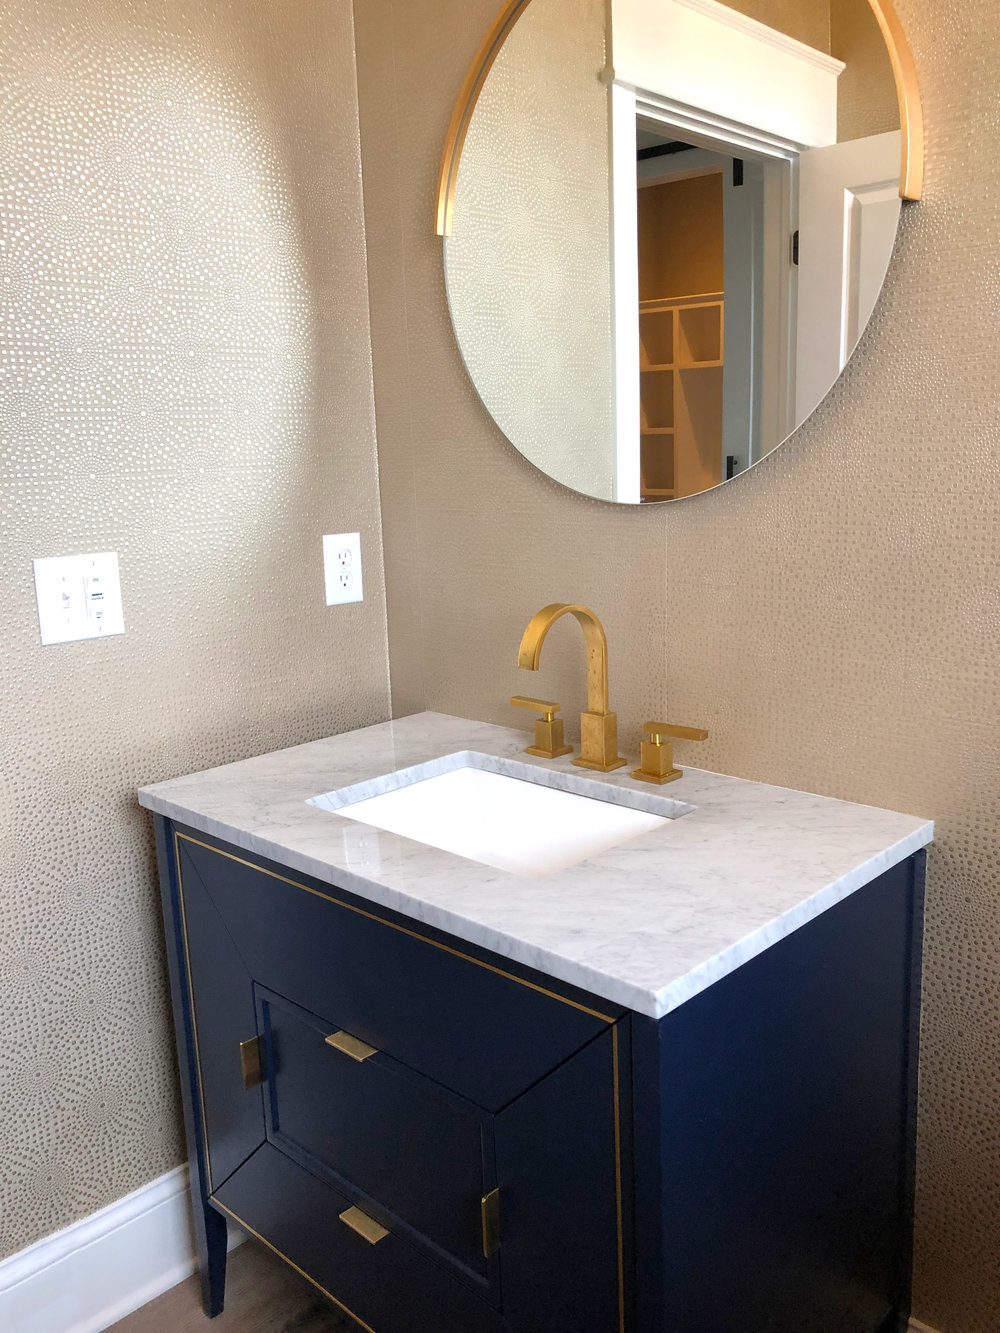 This geometric textured wallpaper is subtle, but brings this powder bath together.